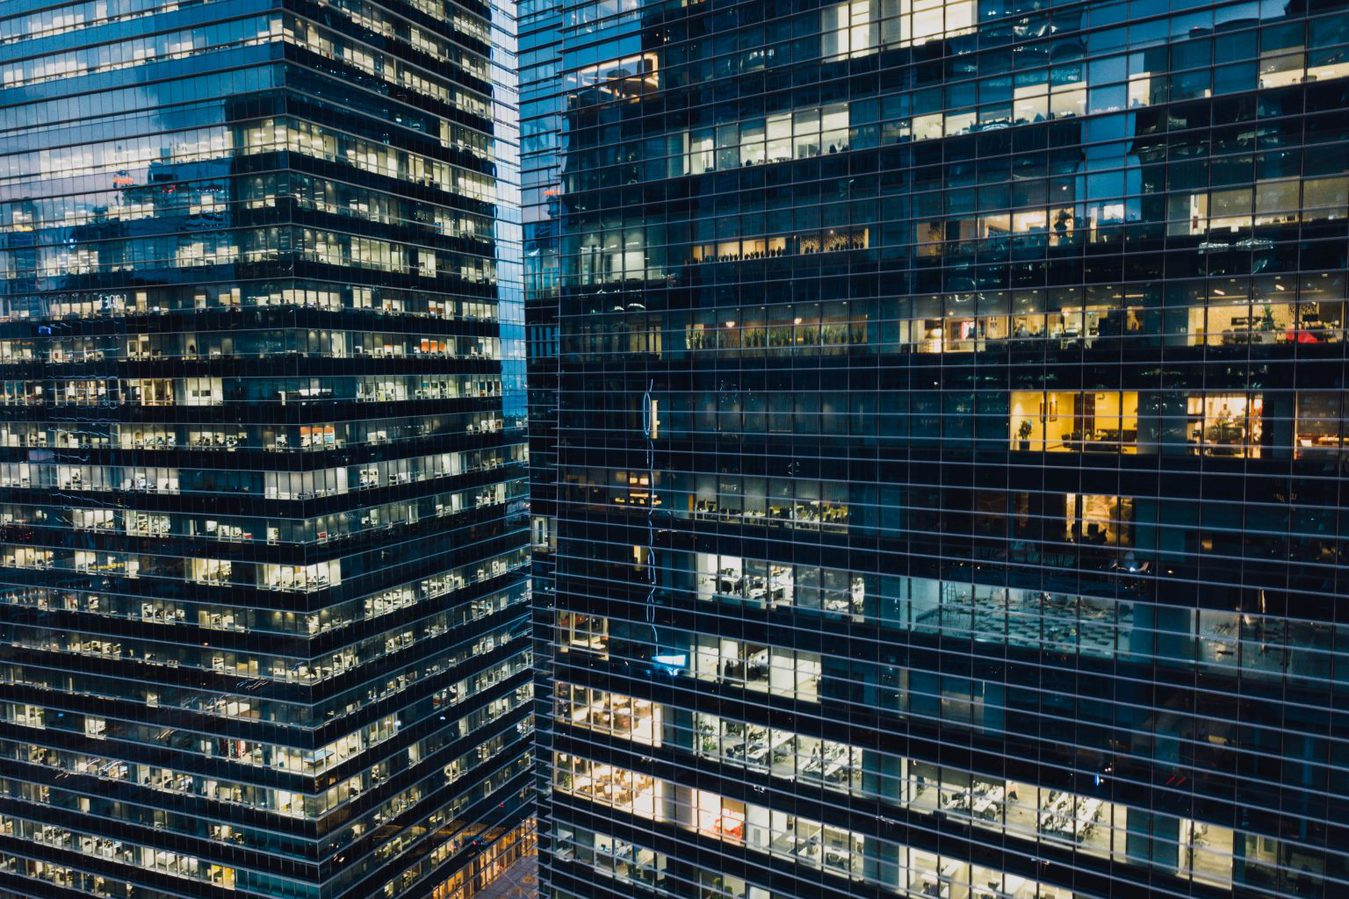 high-rise office buildings at night